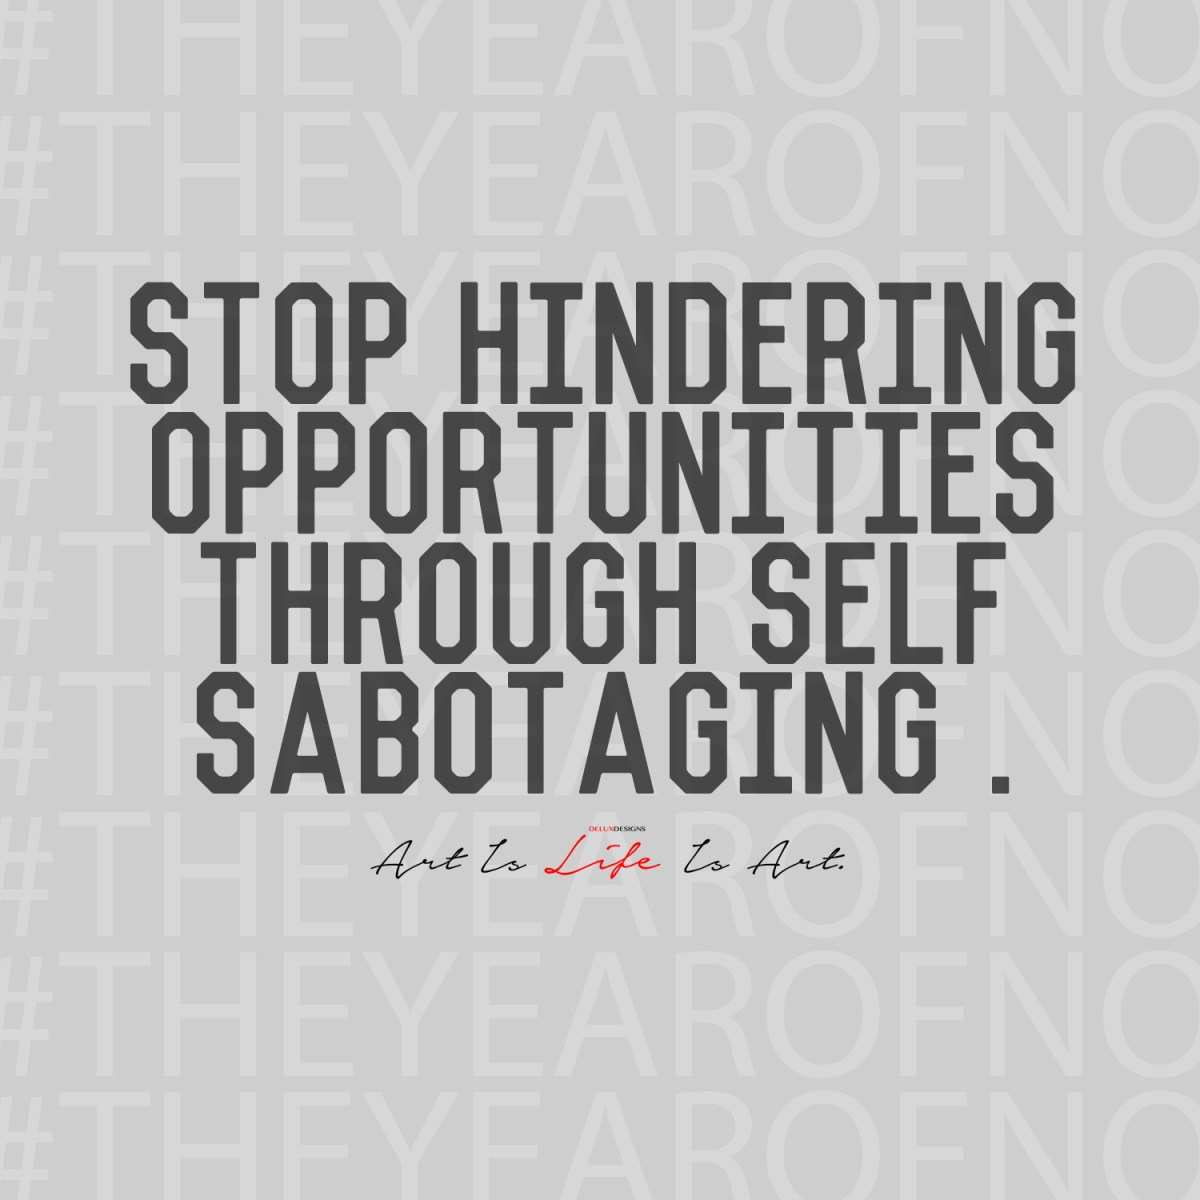 #TheYearofNo - Day 2: Self-Sabotage